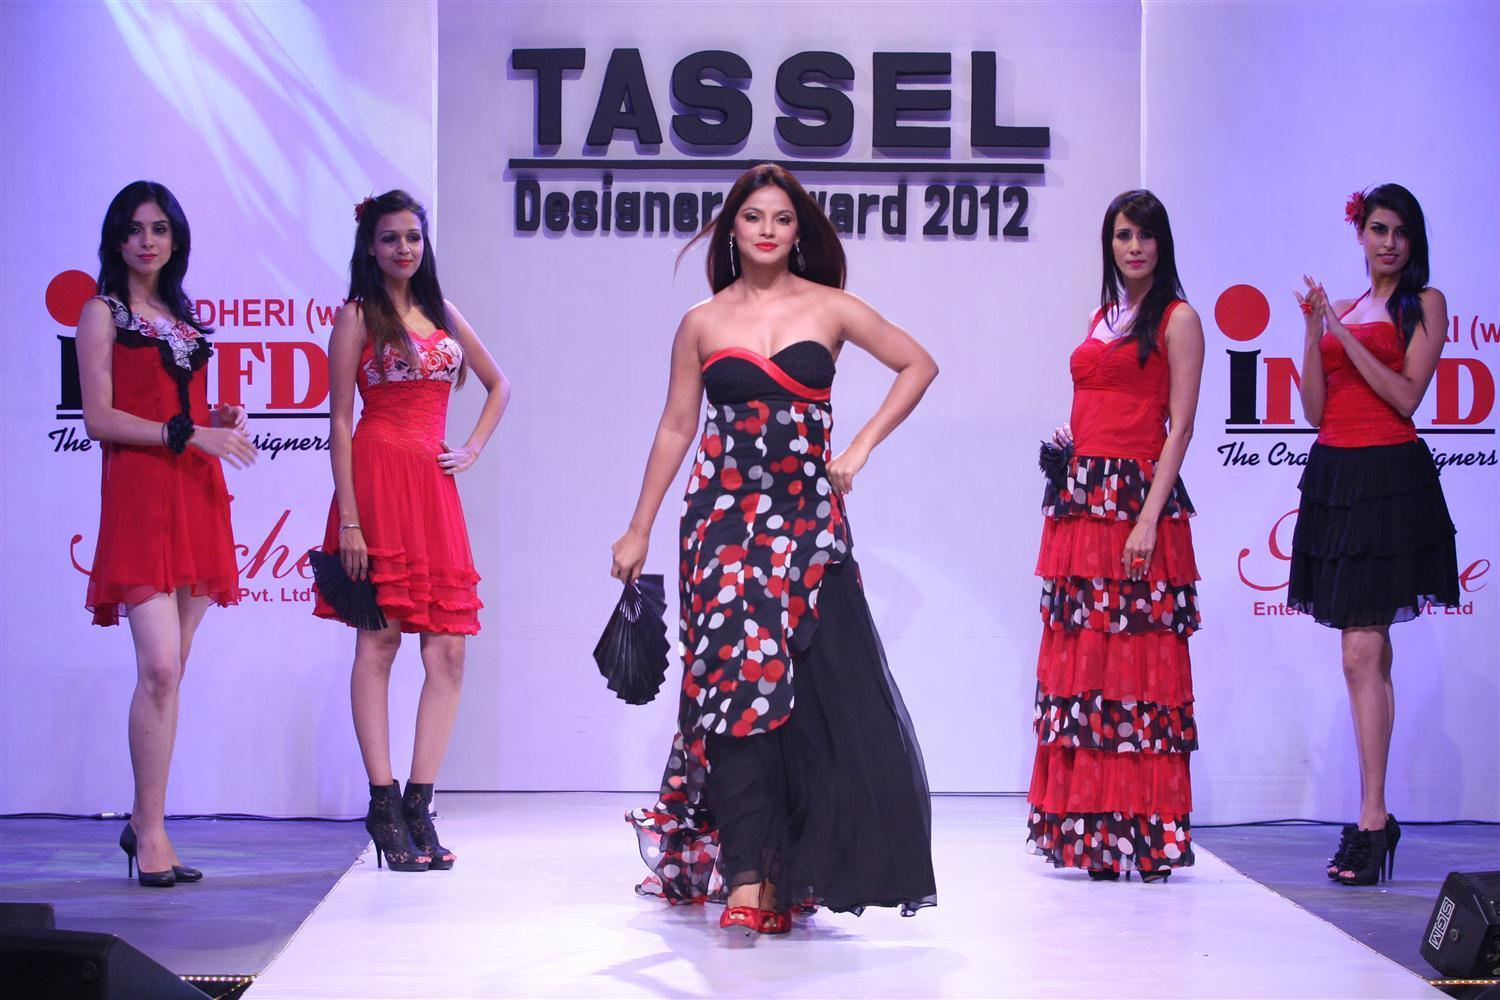 Neetu Chandra At The Tassel Designers Awards 2012